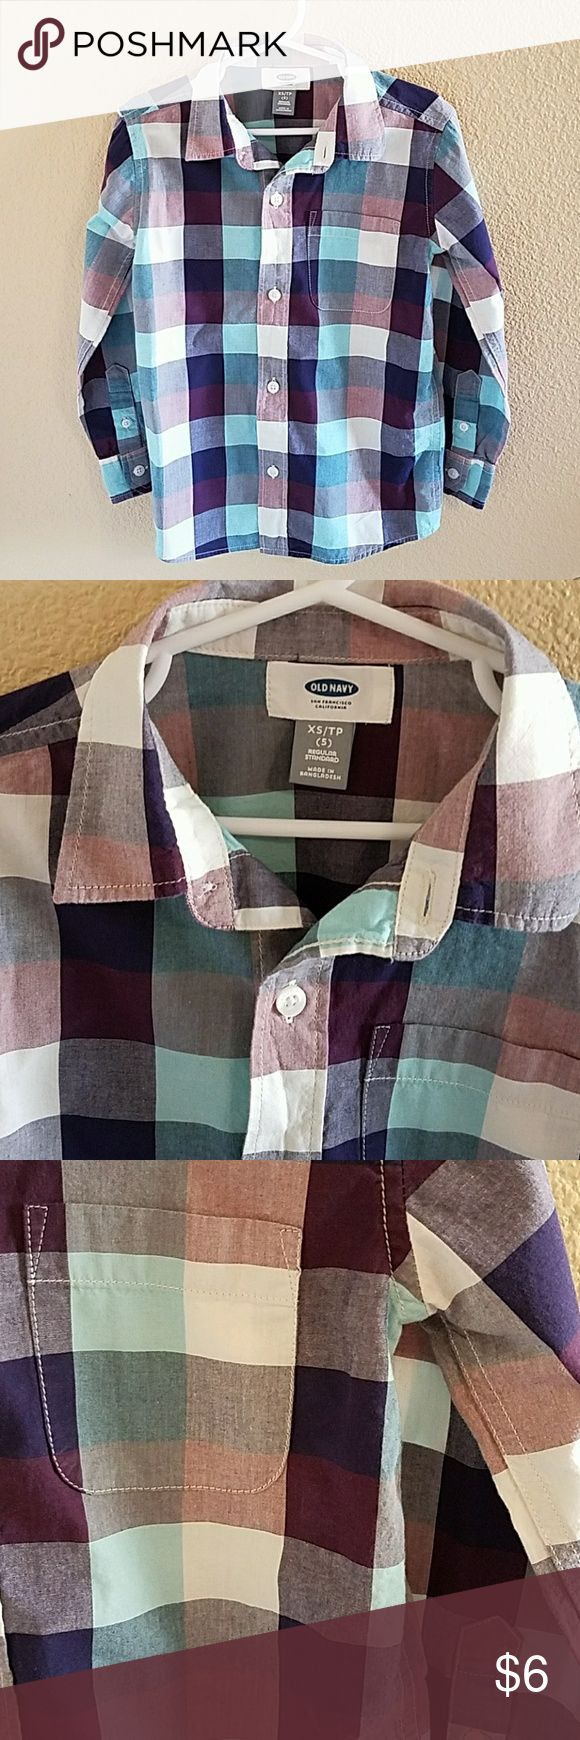 Old Navy Button Up Shirt Size 5 Handsome Old Navy Button Up Shirt size 5 Colors of Navy Blue, White, Maroon, and Baby Blue Excellent condition worn twice Old Navy Shirts & Tops